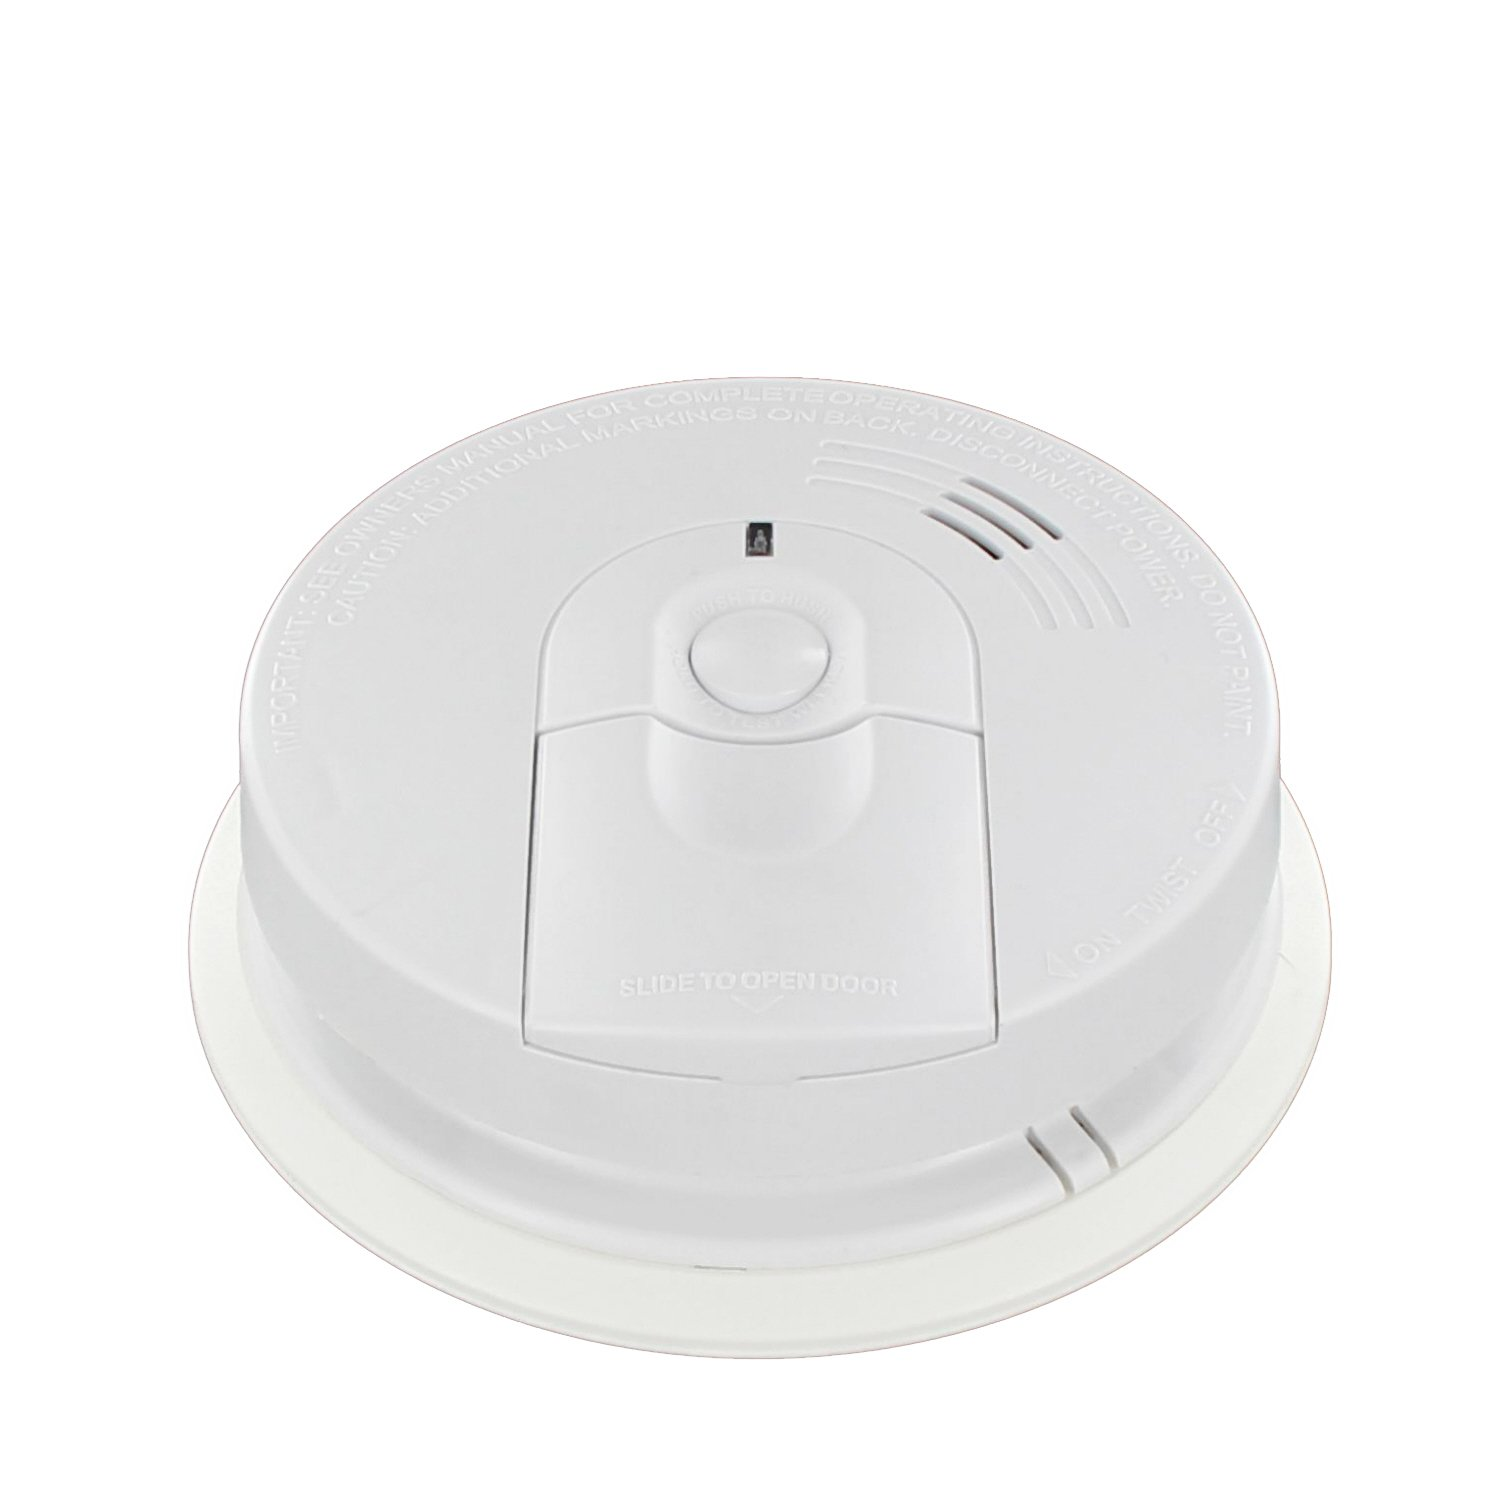 Kidde I4618ac Battery Backup Firex Hardwire Ionization Smoke How To Wiring Detectors Burglar Alarm System Technology Detector Kiddie Ka F Adaptor